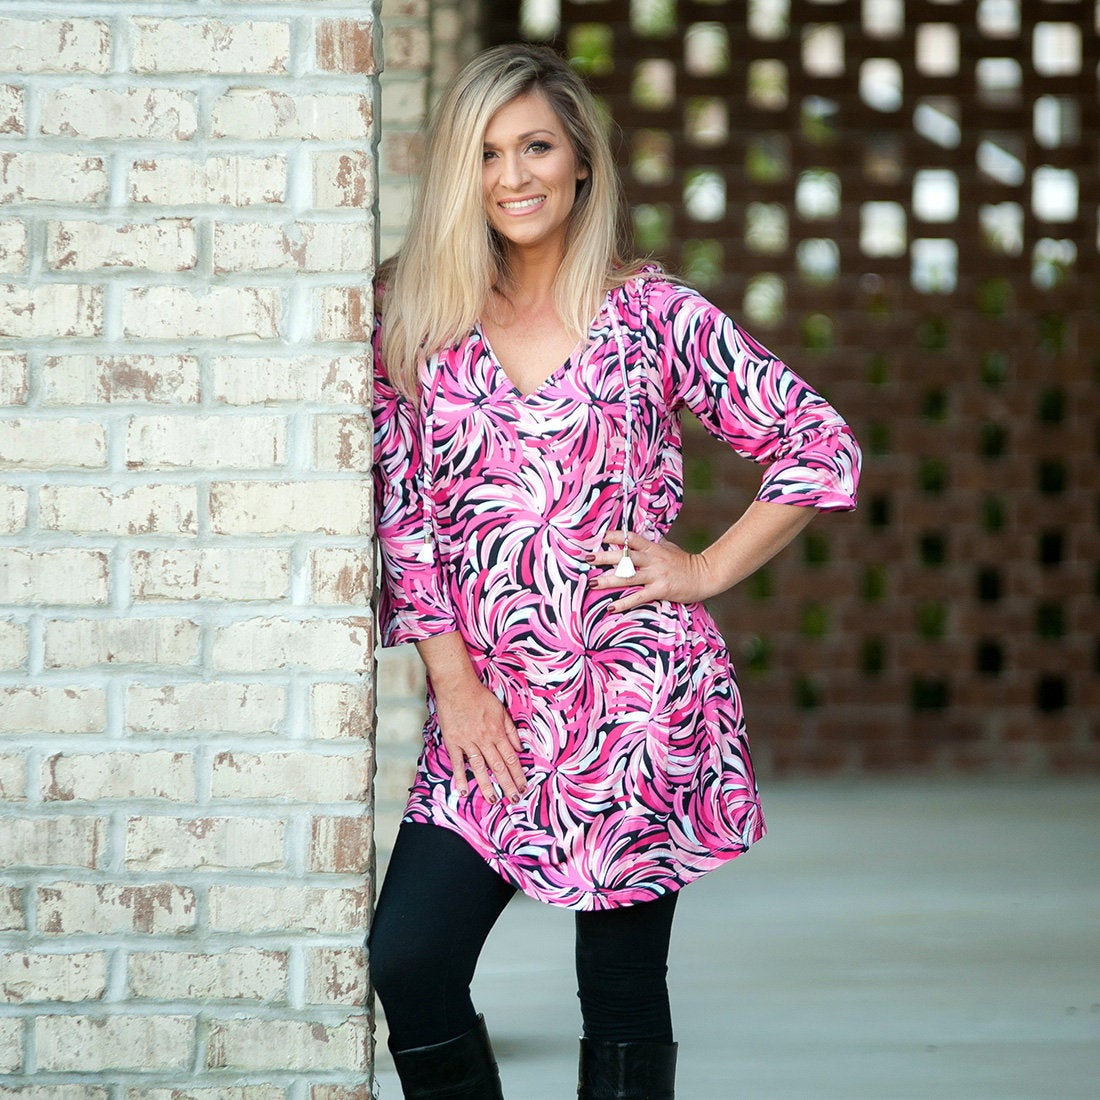 Tunic top - Etsy